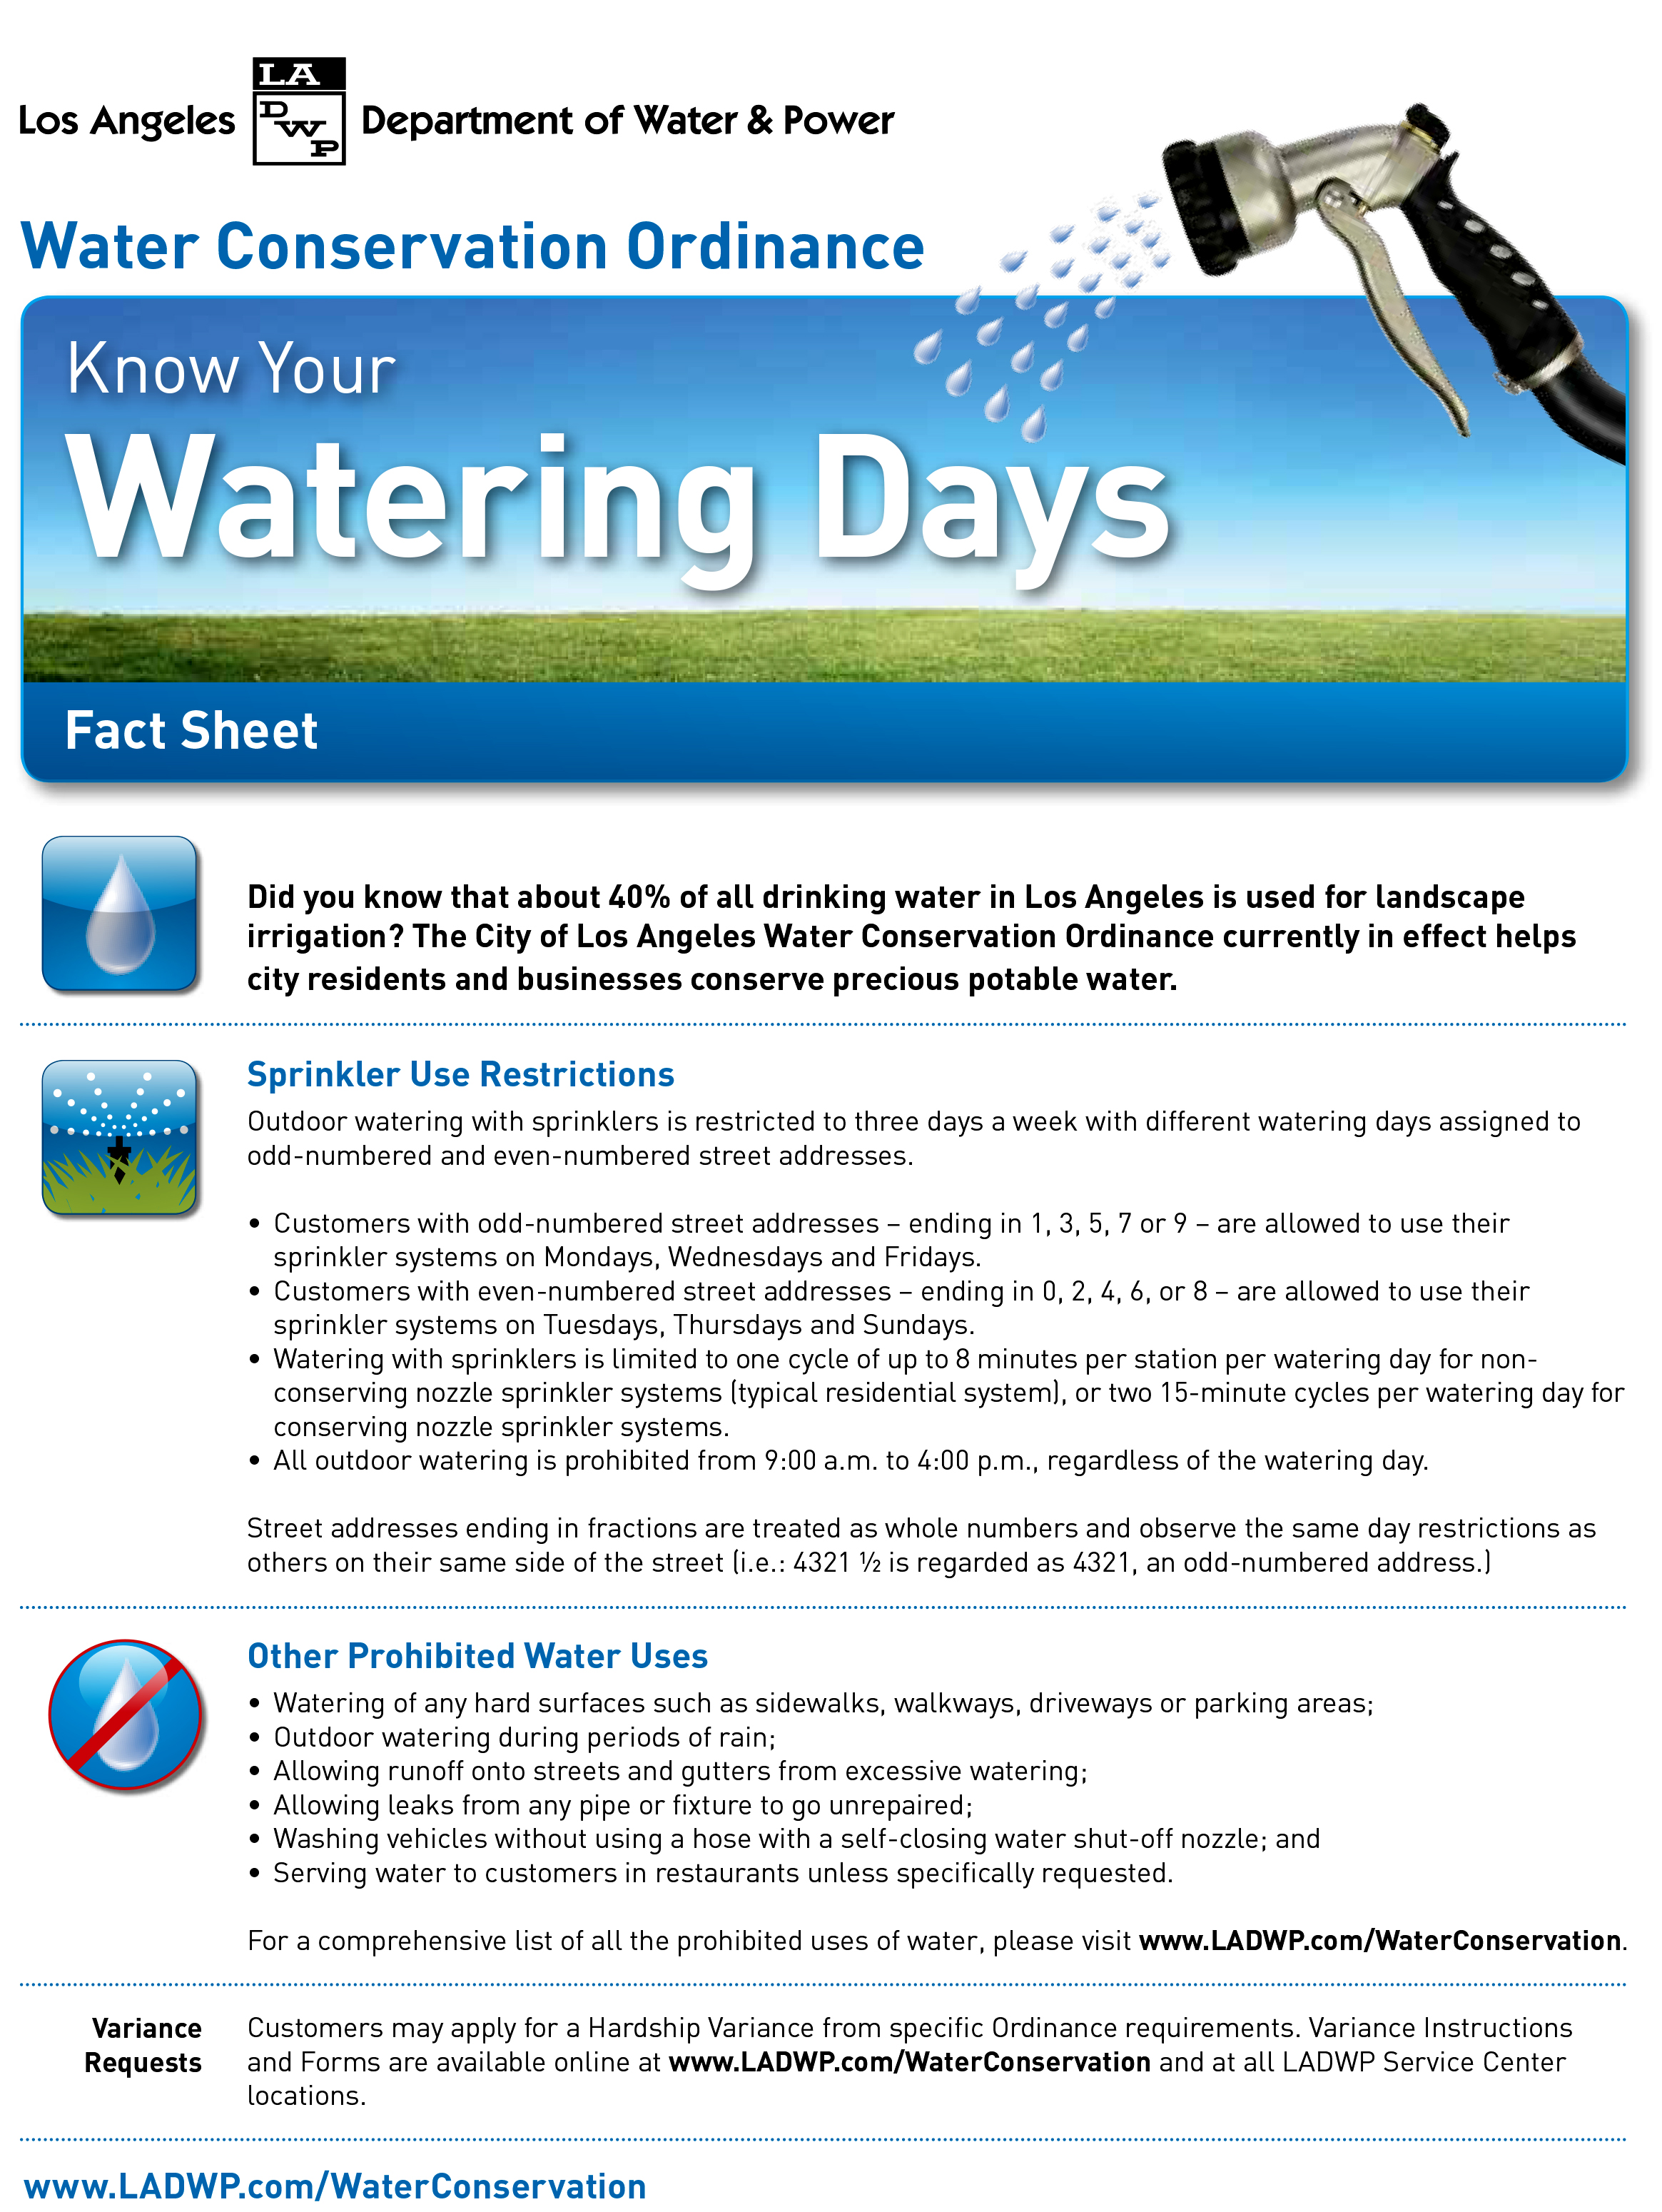 Know_Your_Watering_Days_Fact_Sheet_English_1_.jpg